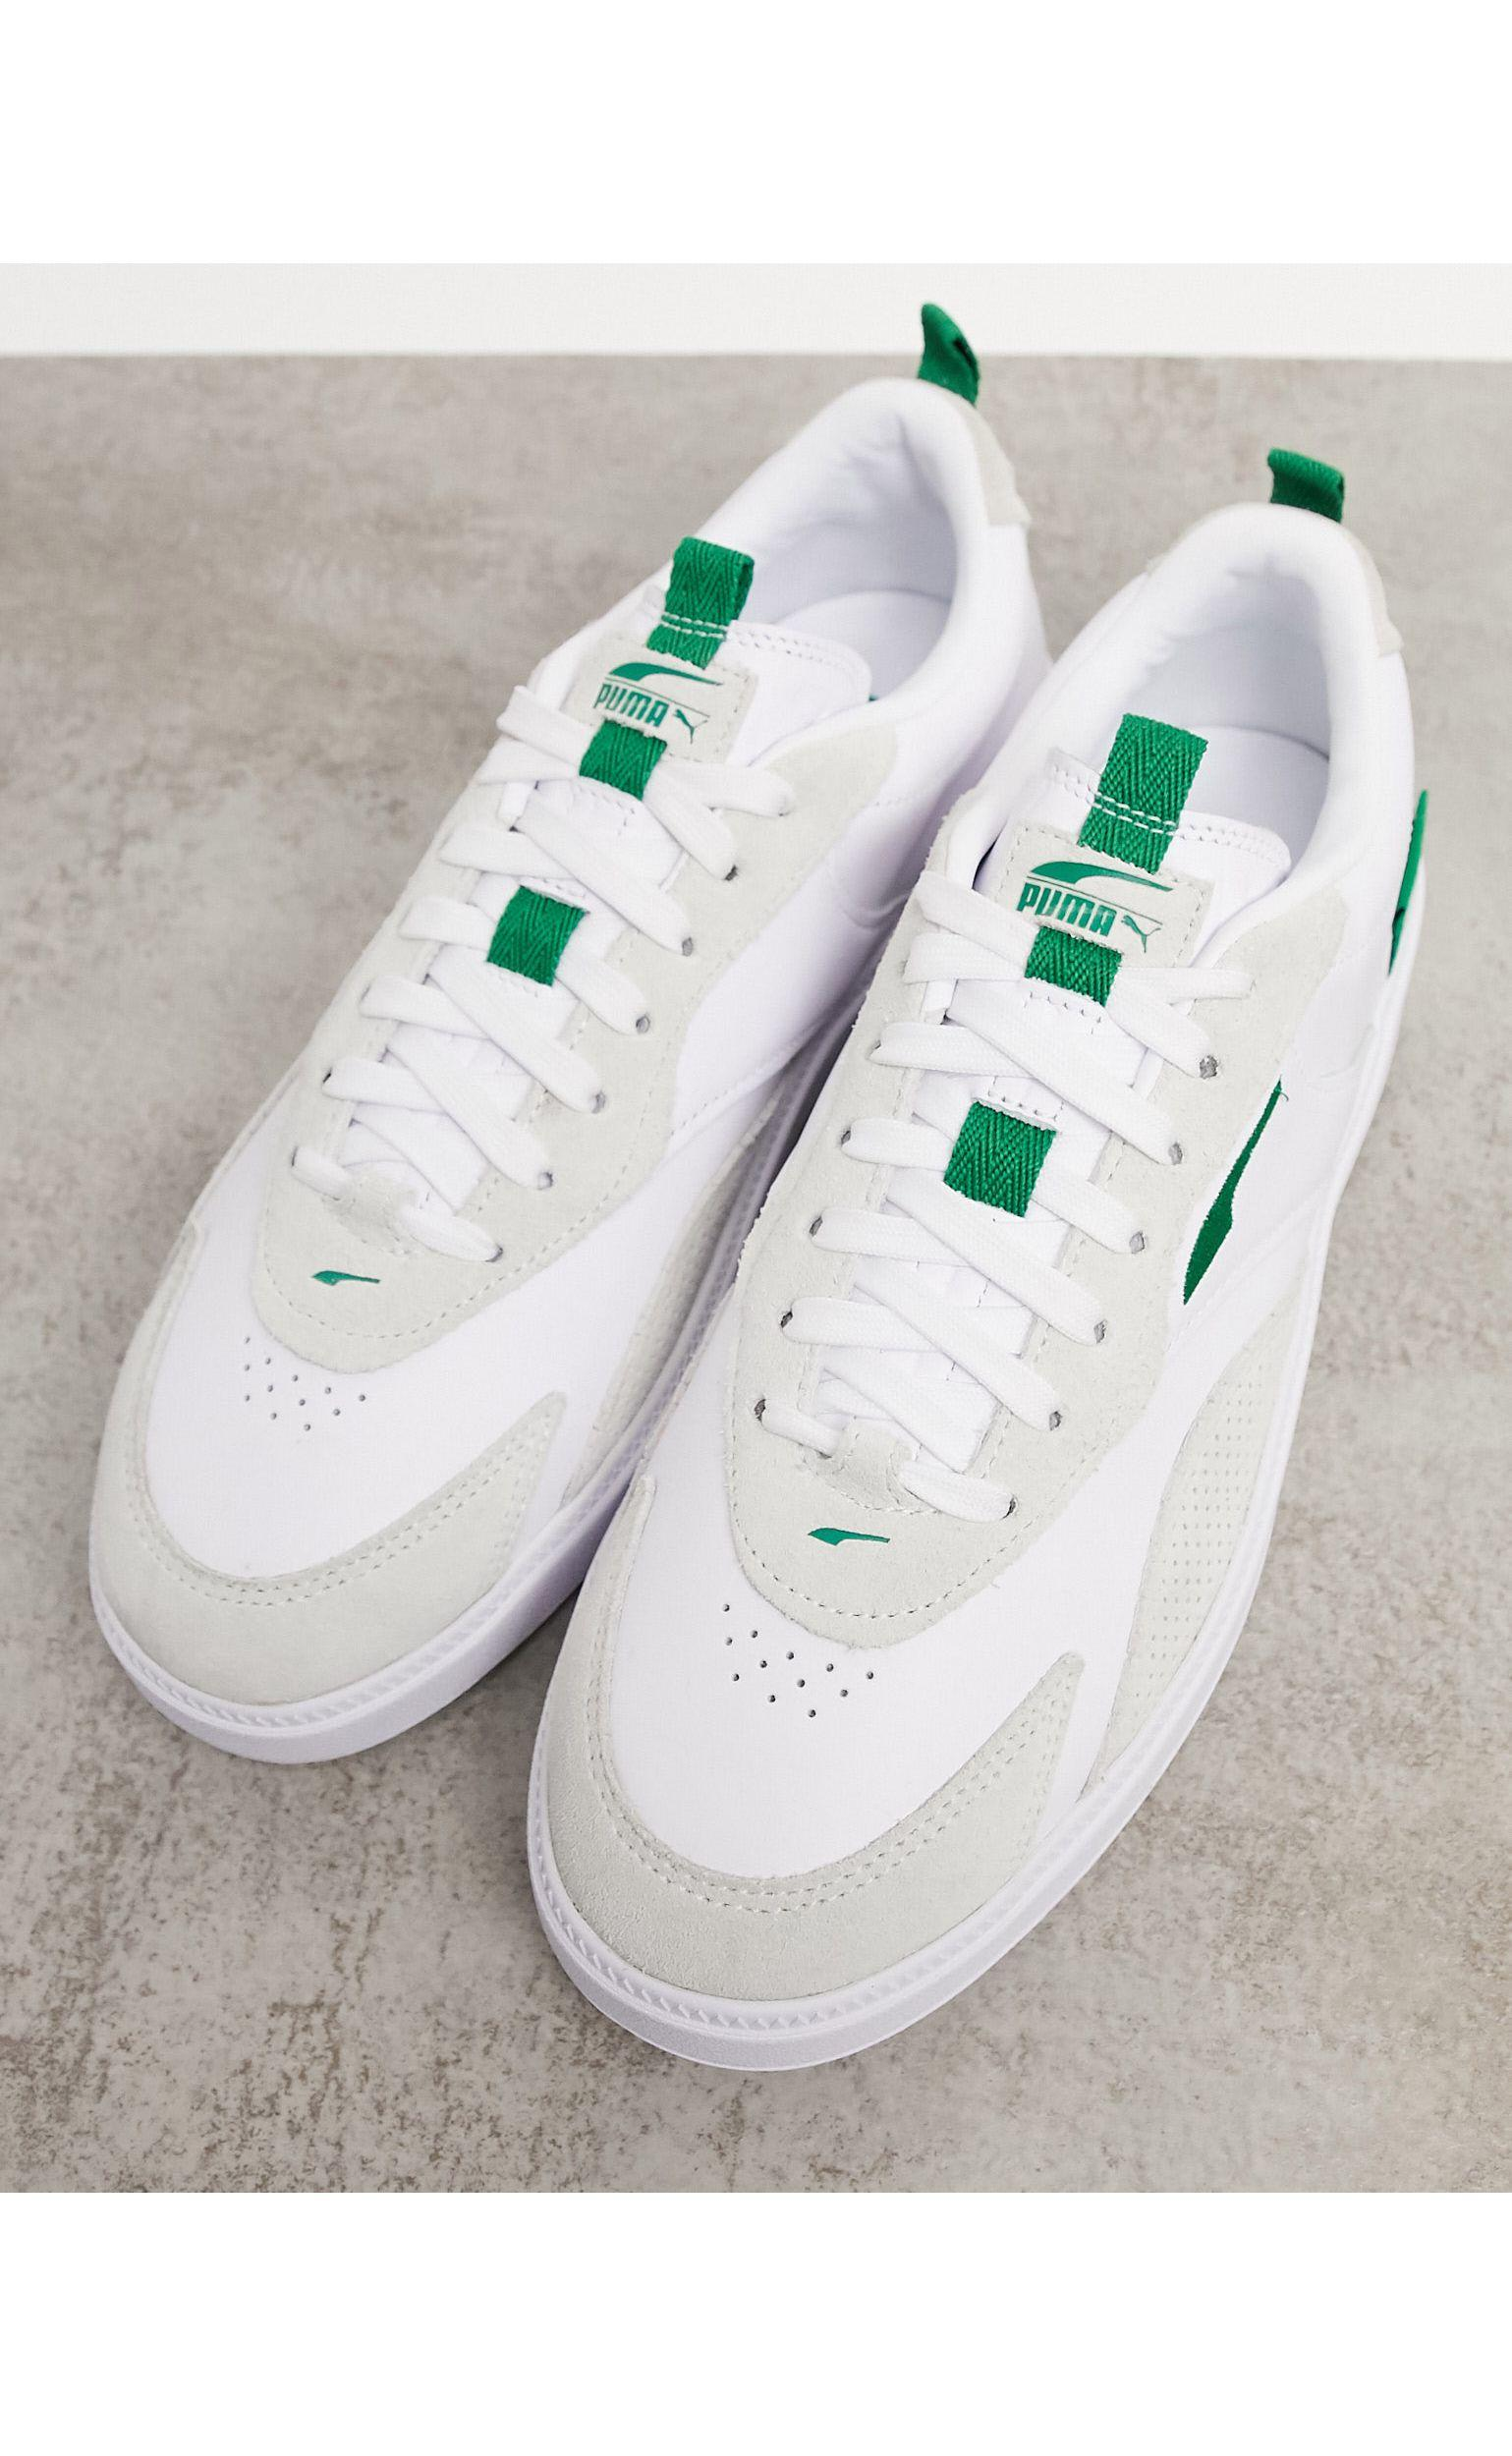 PUMA Oslo Pro Leather Trainer in White for Men - Lyst